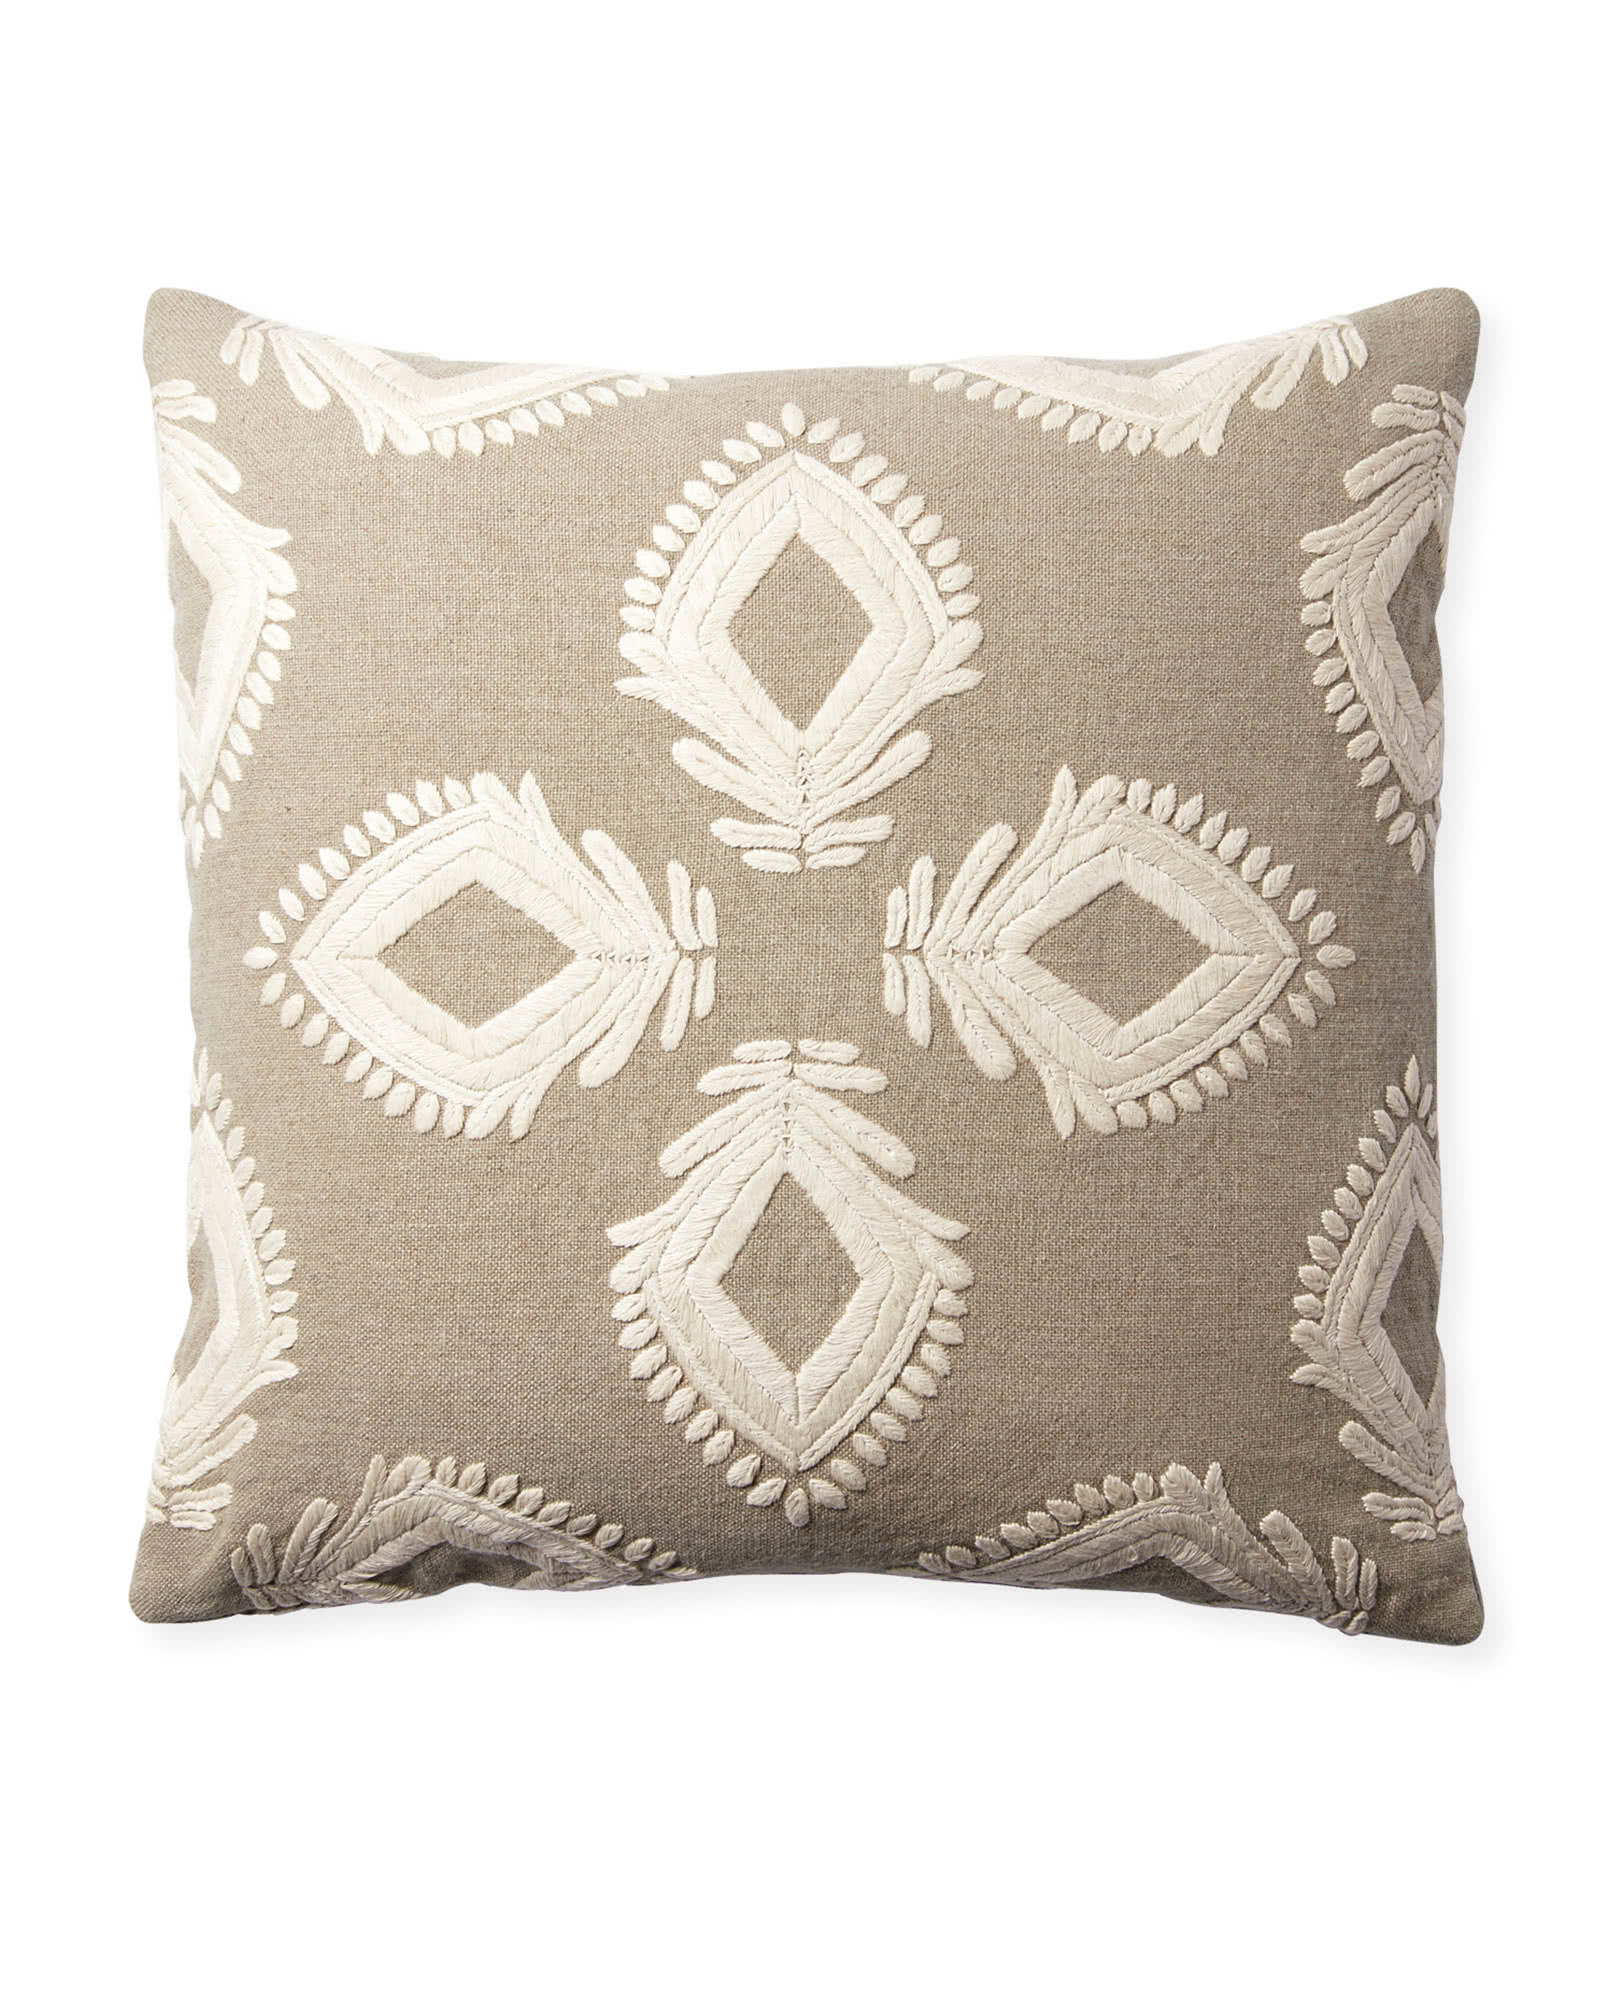 Leighton Pillow Cover, Flax